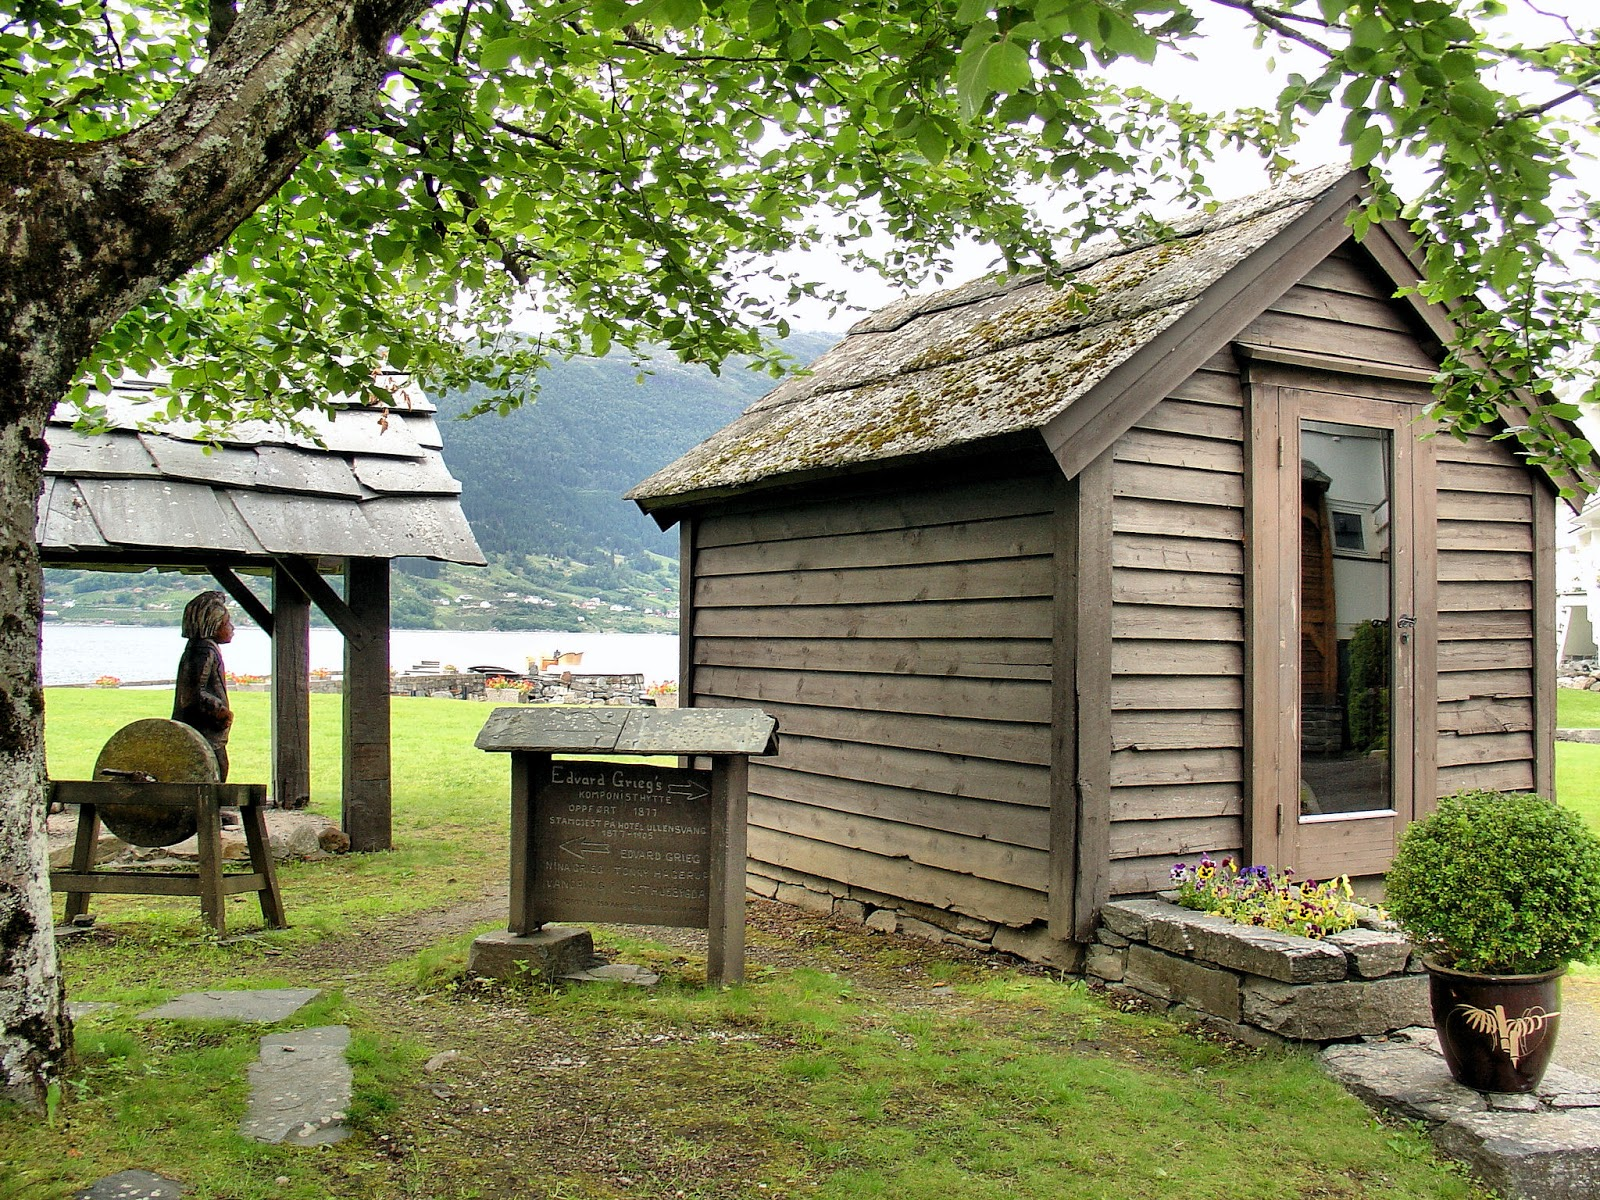 Edvard Grieg's hytte or hut was relocated to the gardens of the Hotel Ullensvang.